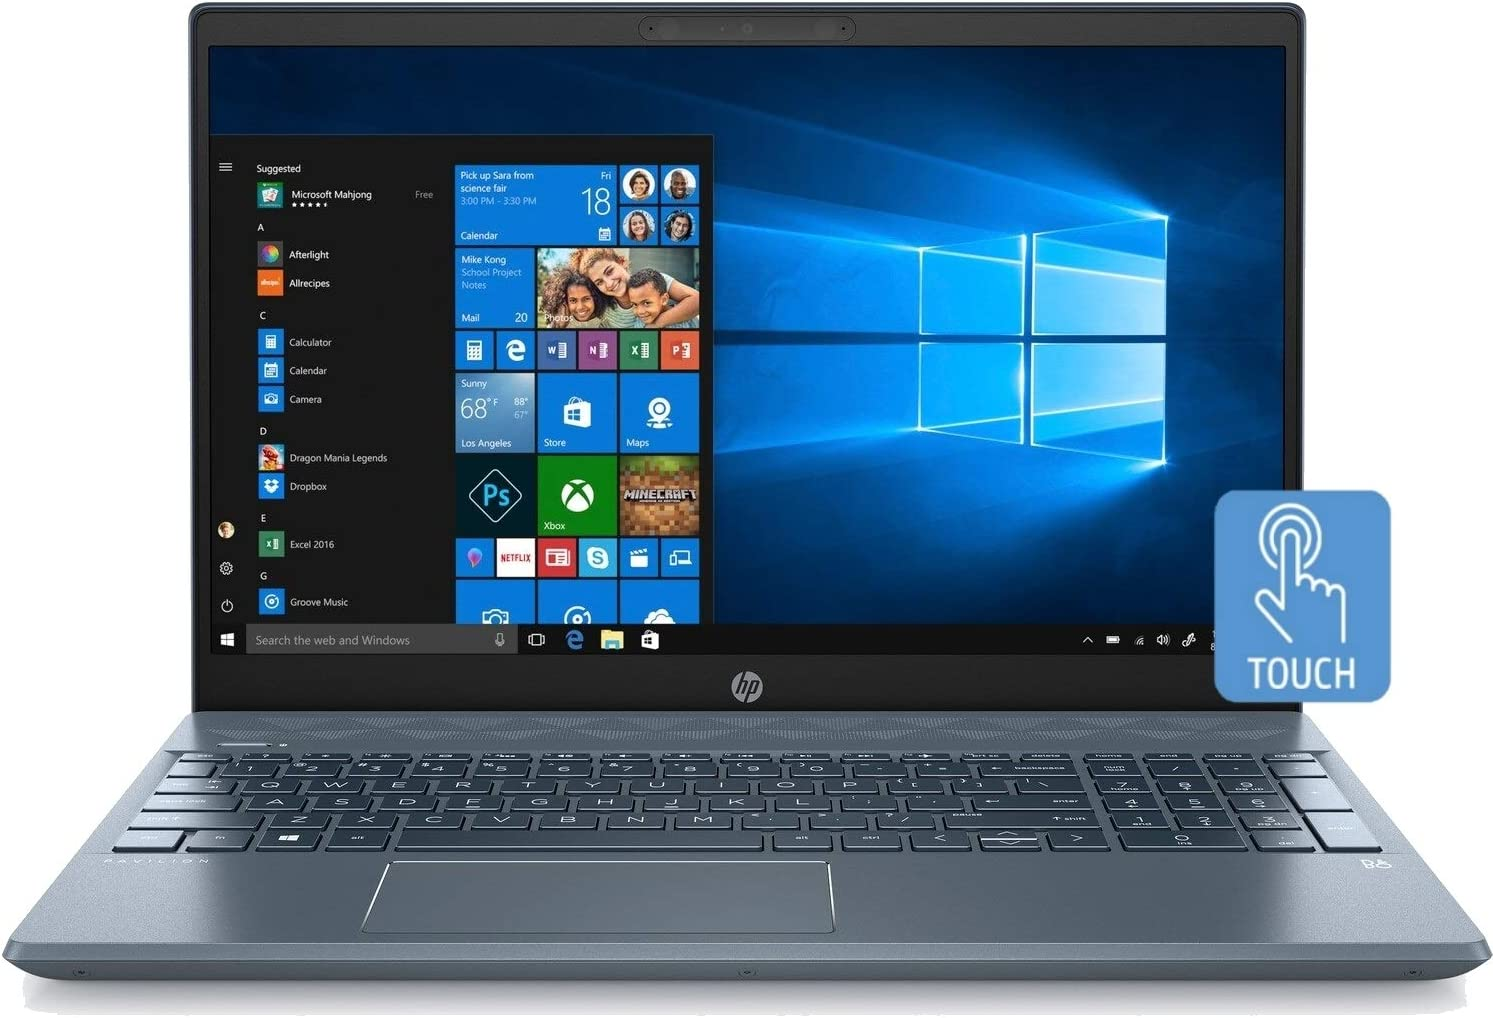 hp gaming laptop with mx250 graphic card